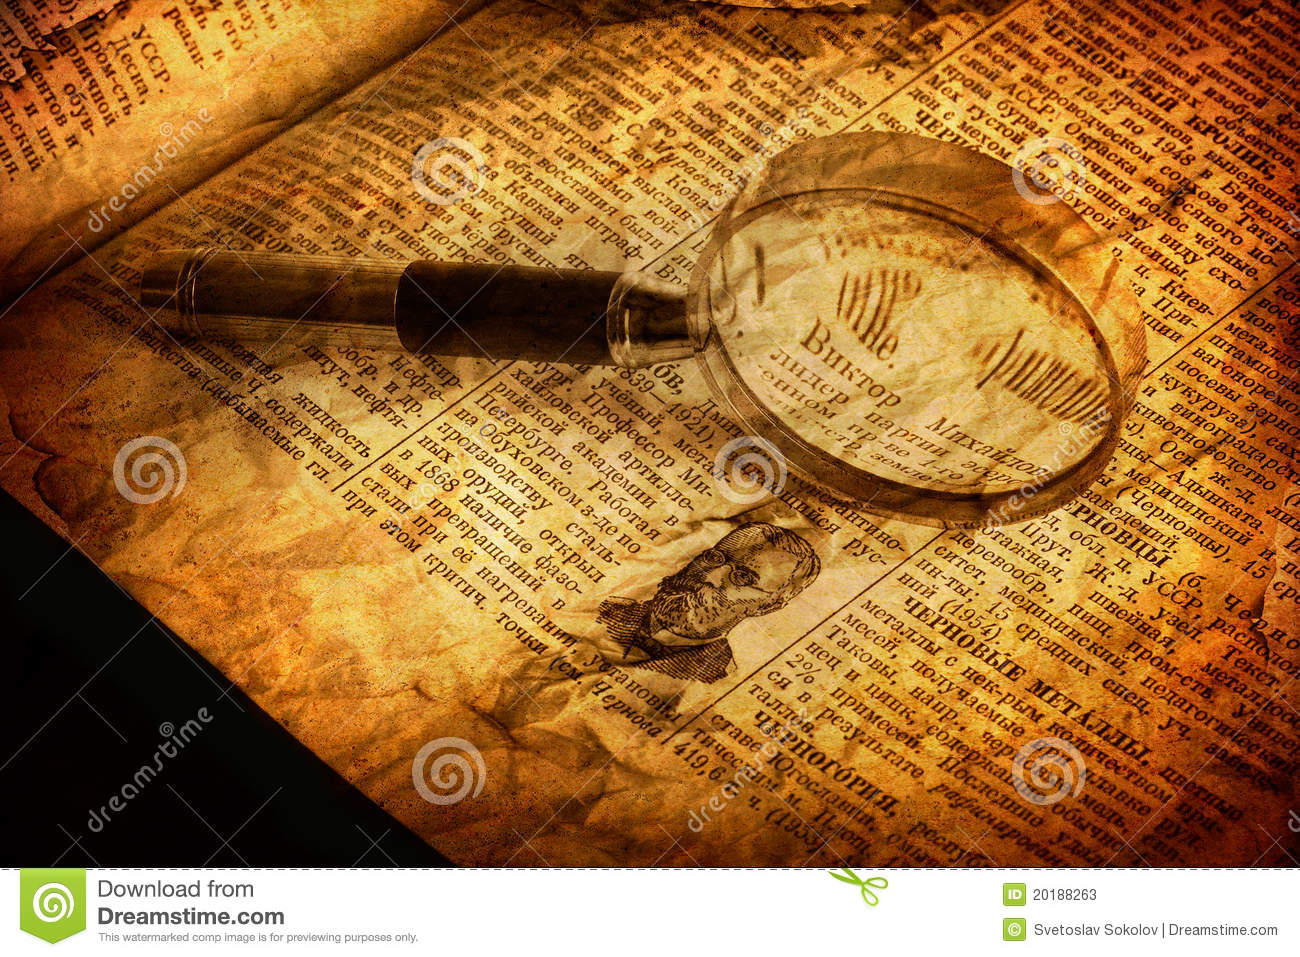 spyglass and old book